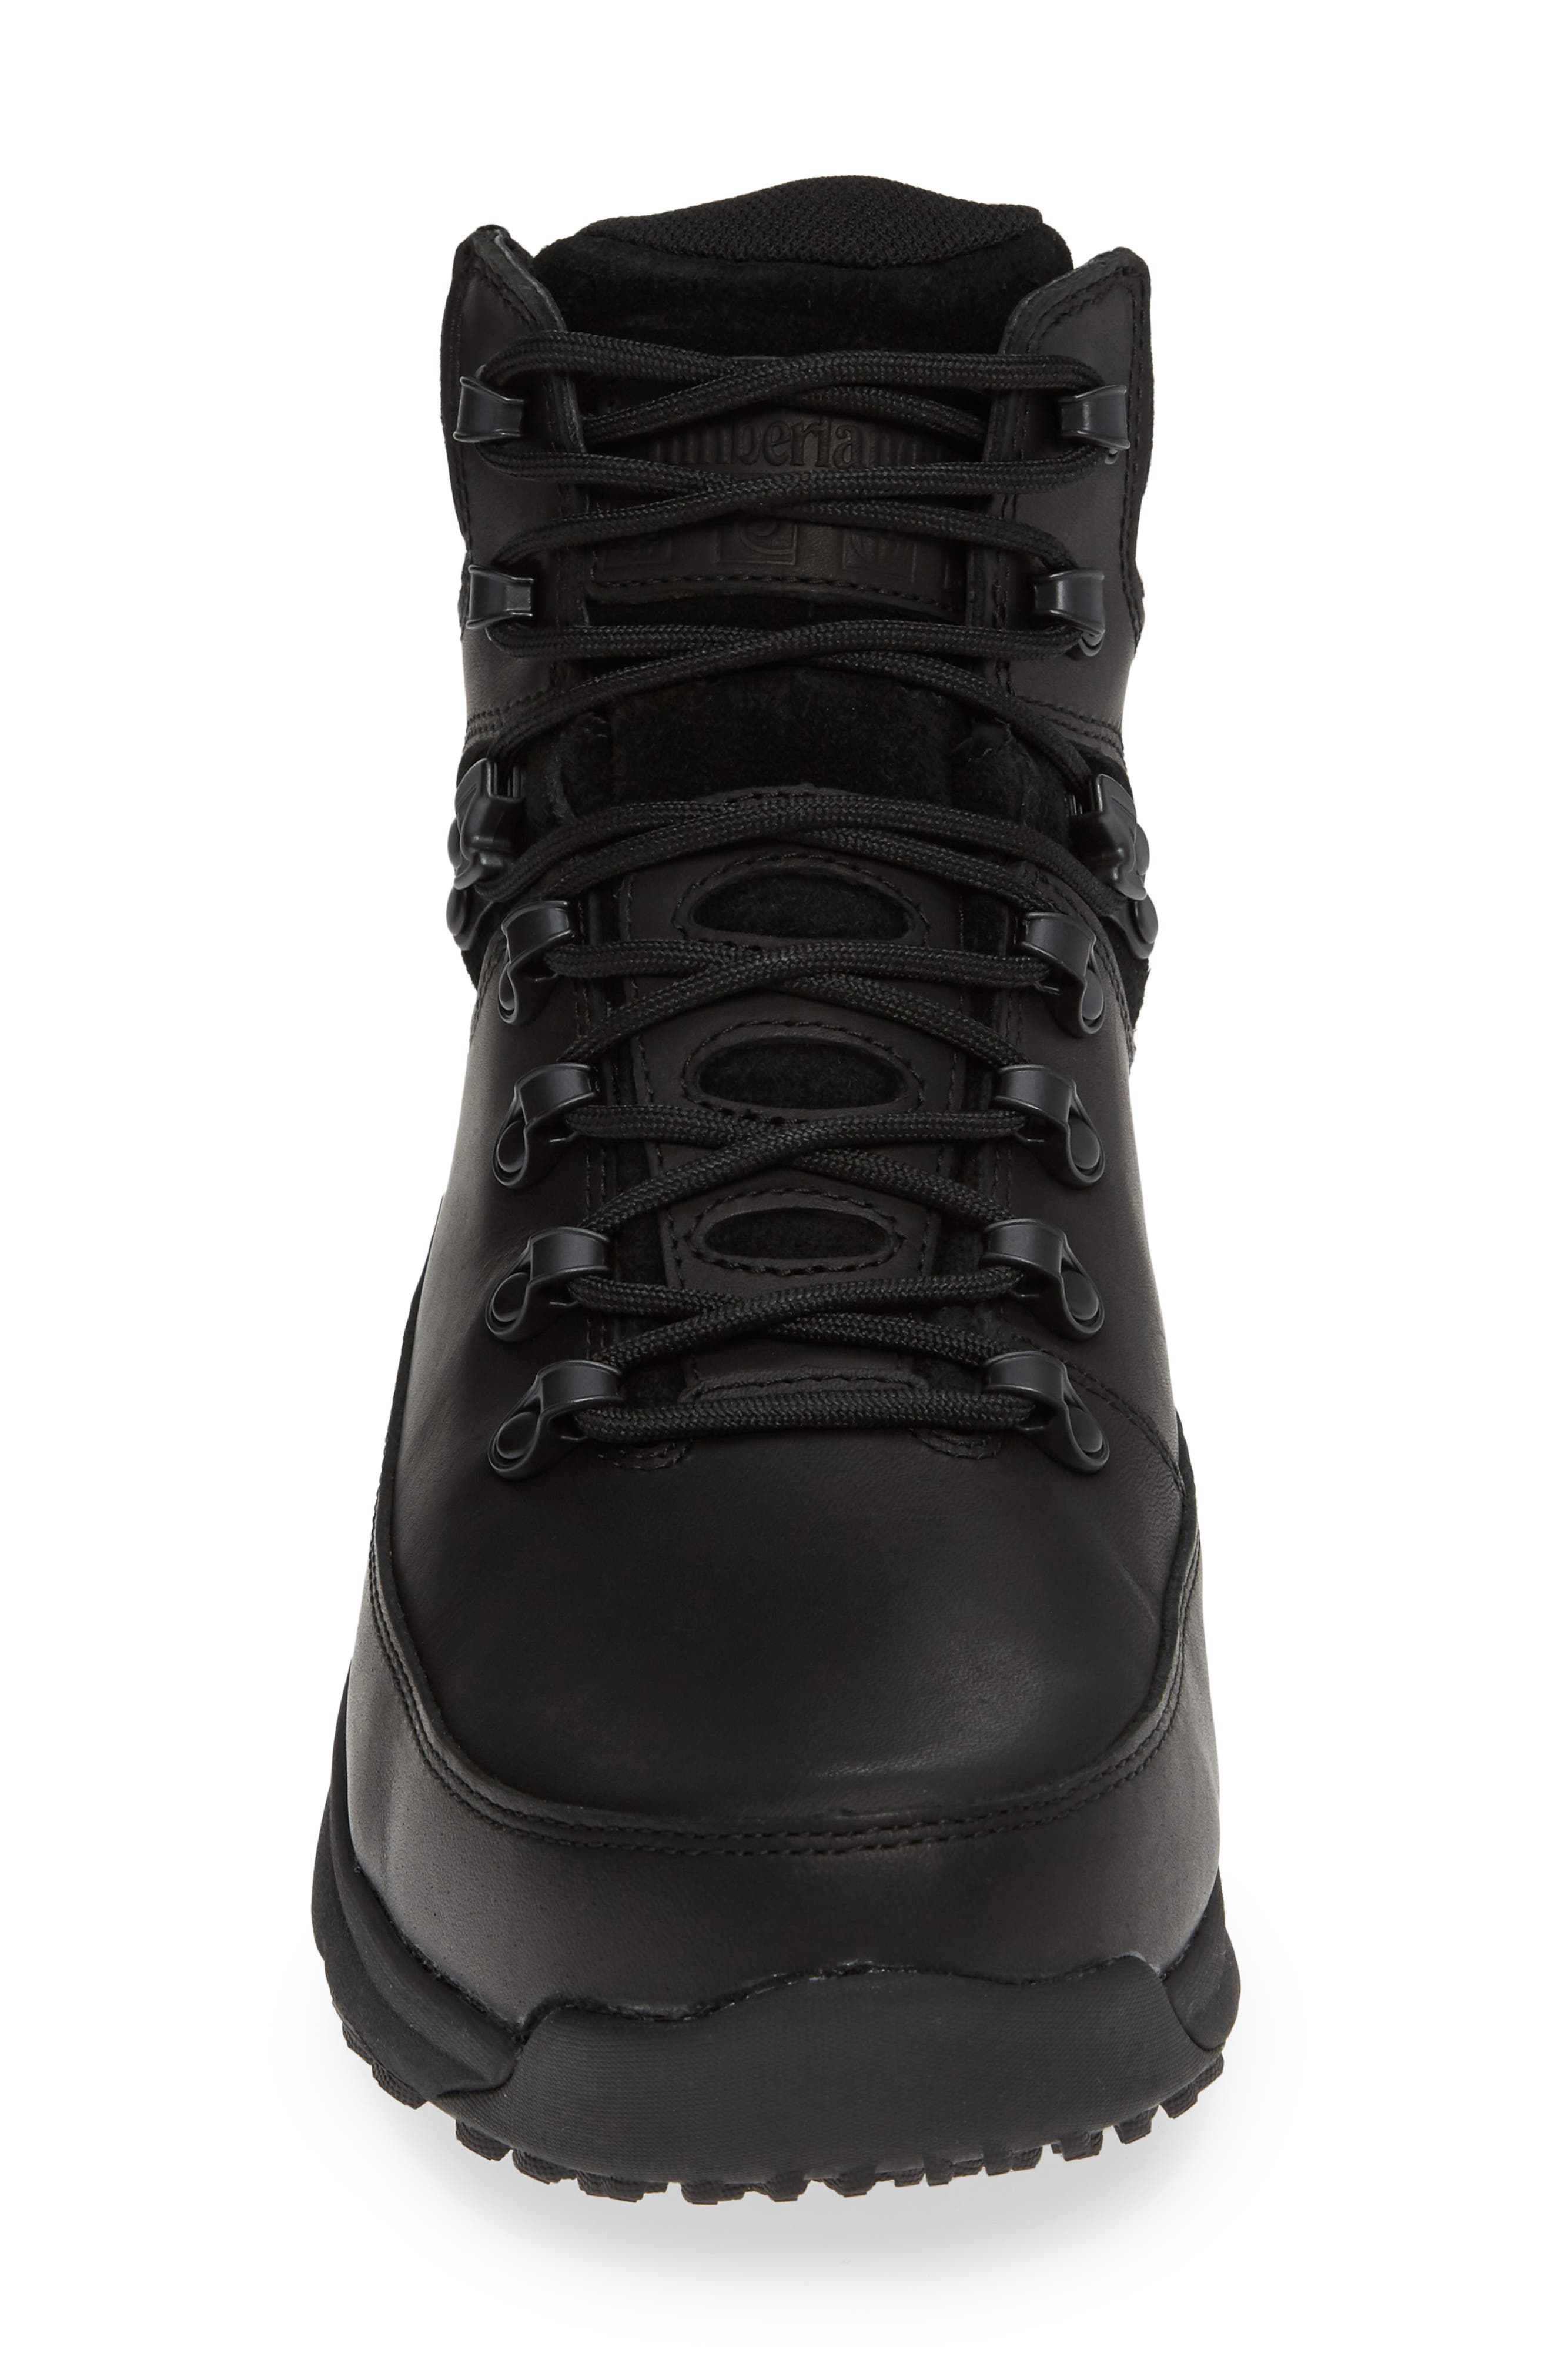 World Hiker Waterproof Boot,                             Alternate thumbnail 4, color,                             BLACK LEATHER